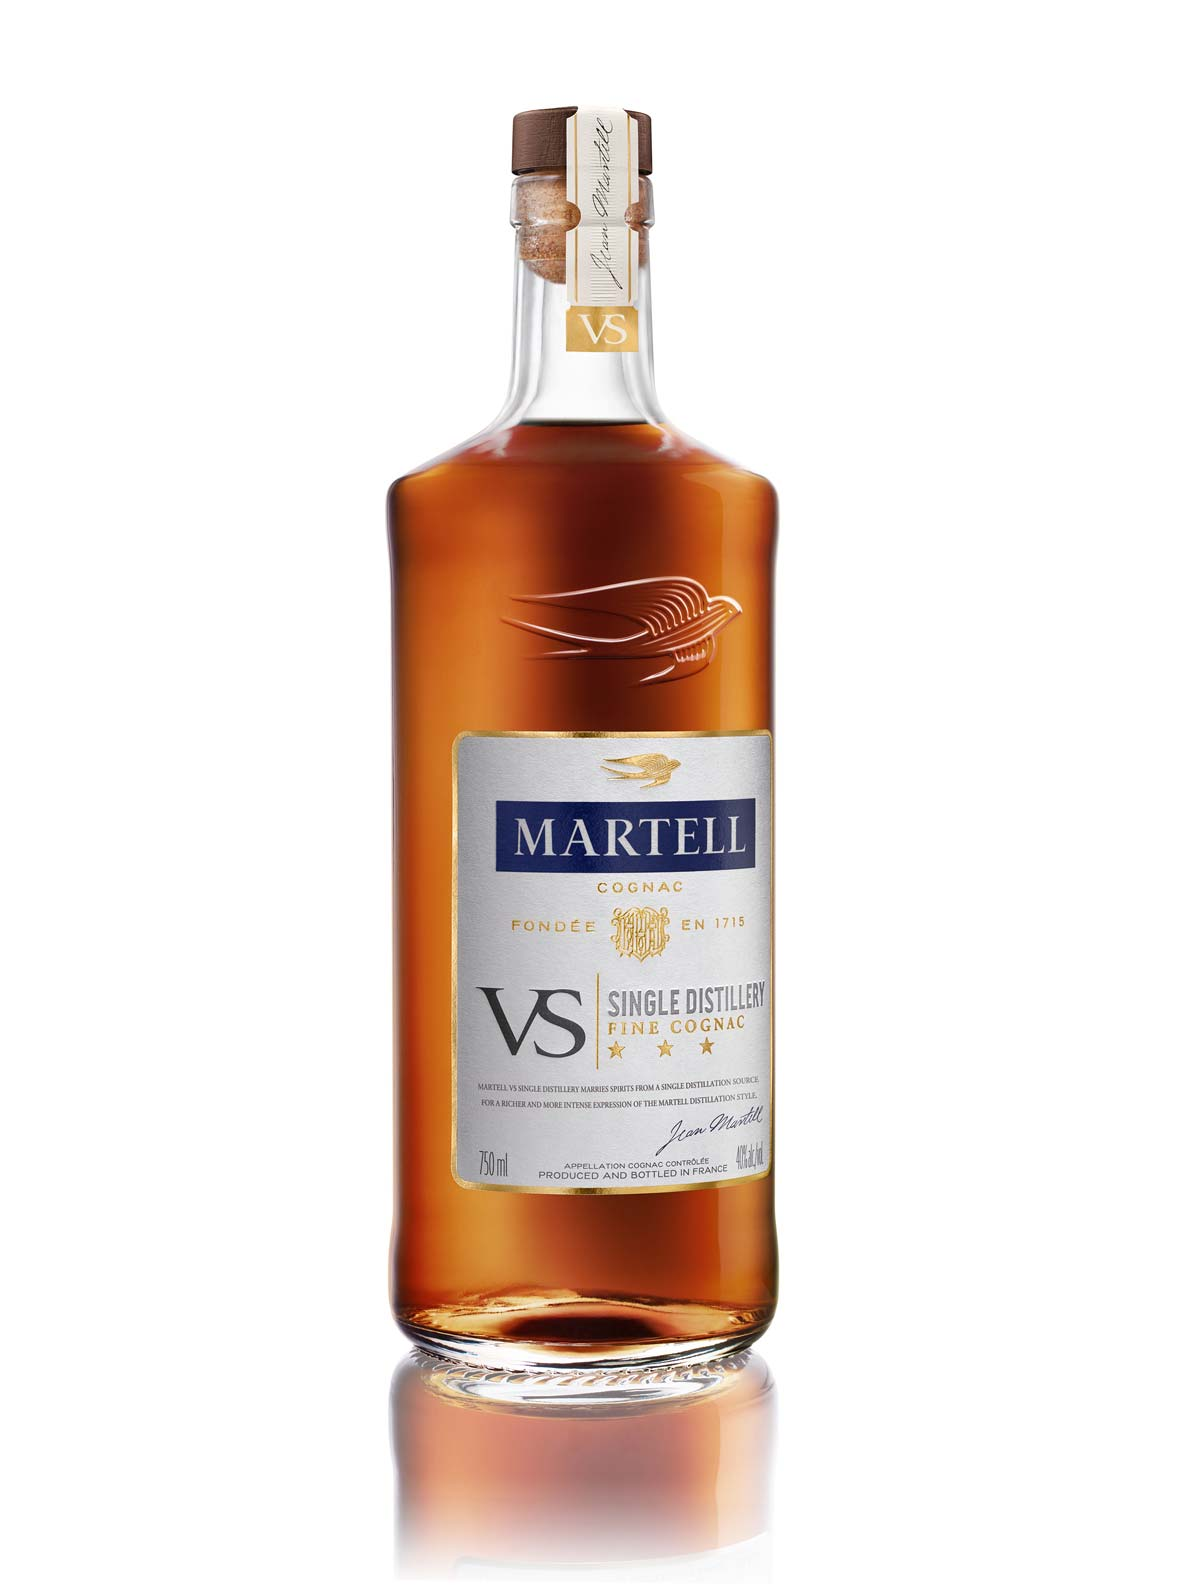 Martell launches VS Single Distillery Cognac